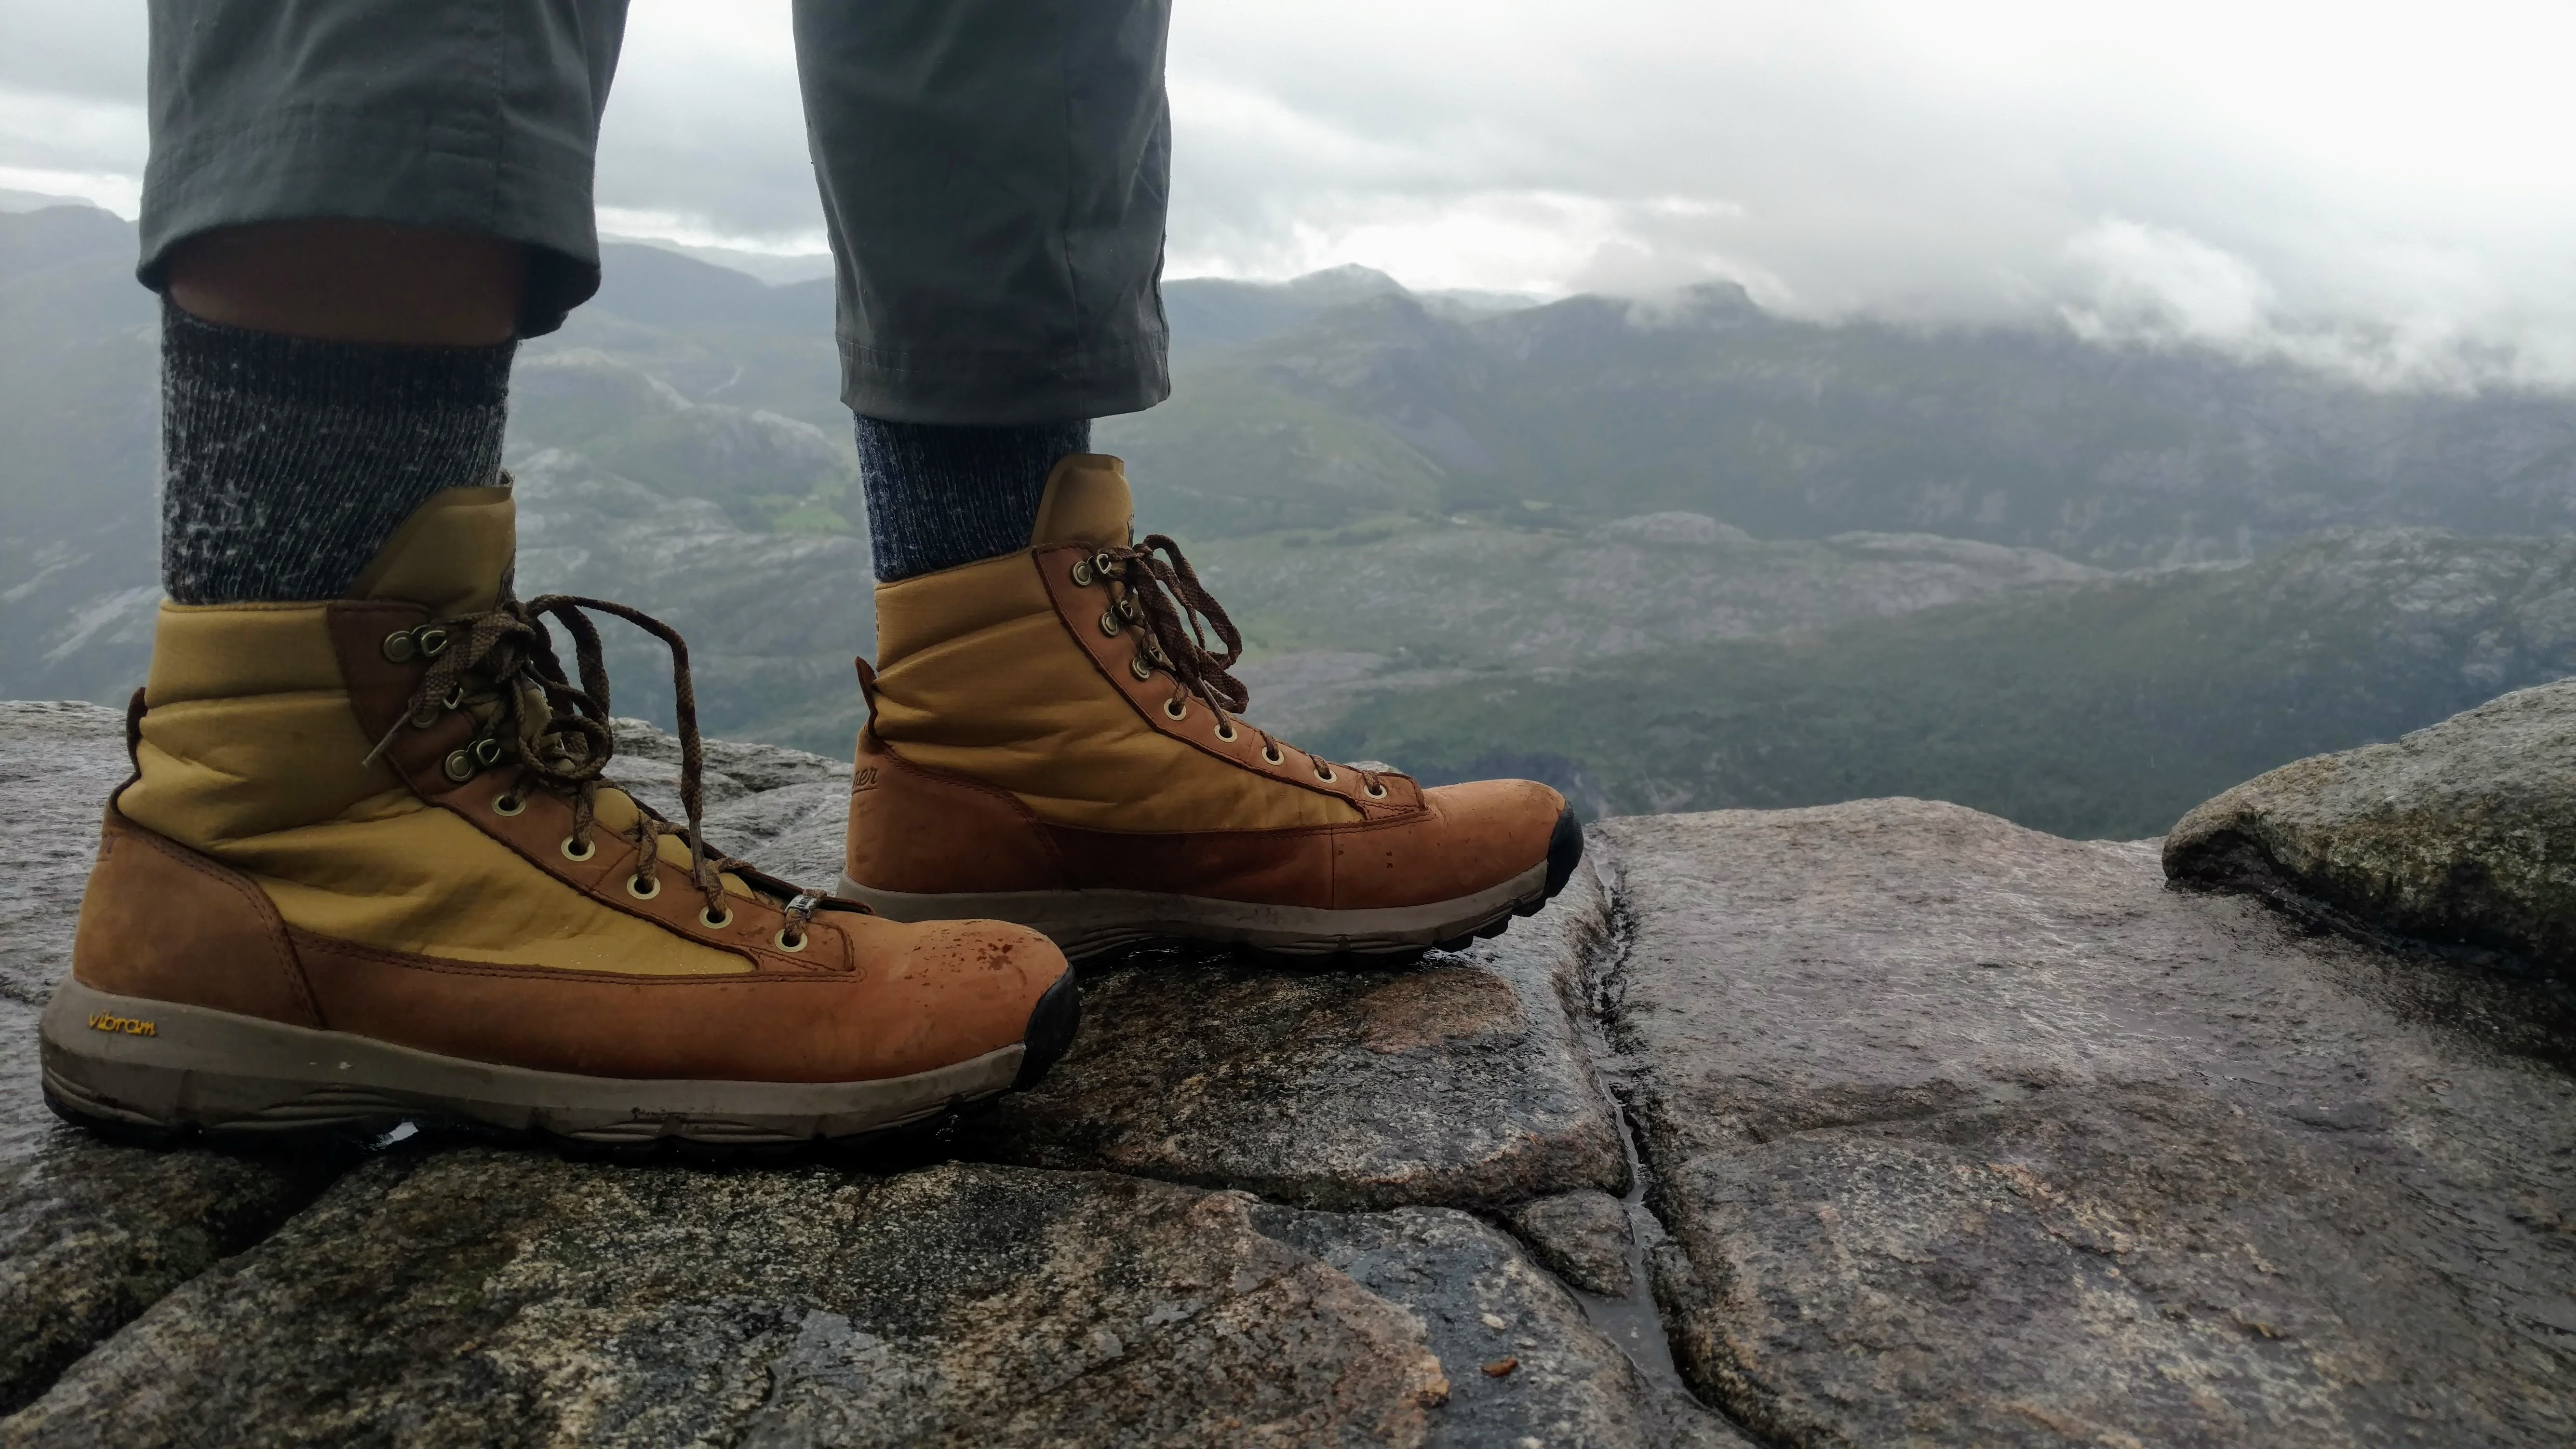 Danner Explorer 650 Hiking Boots Endurancereview Com